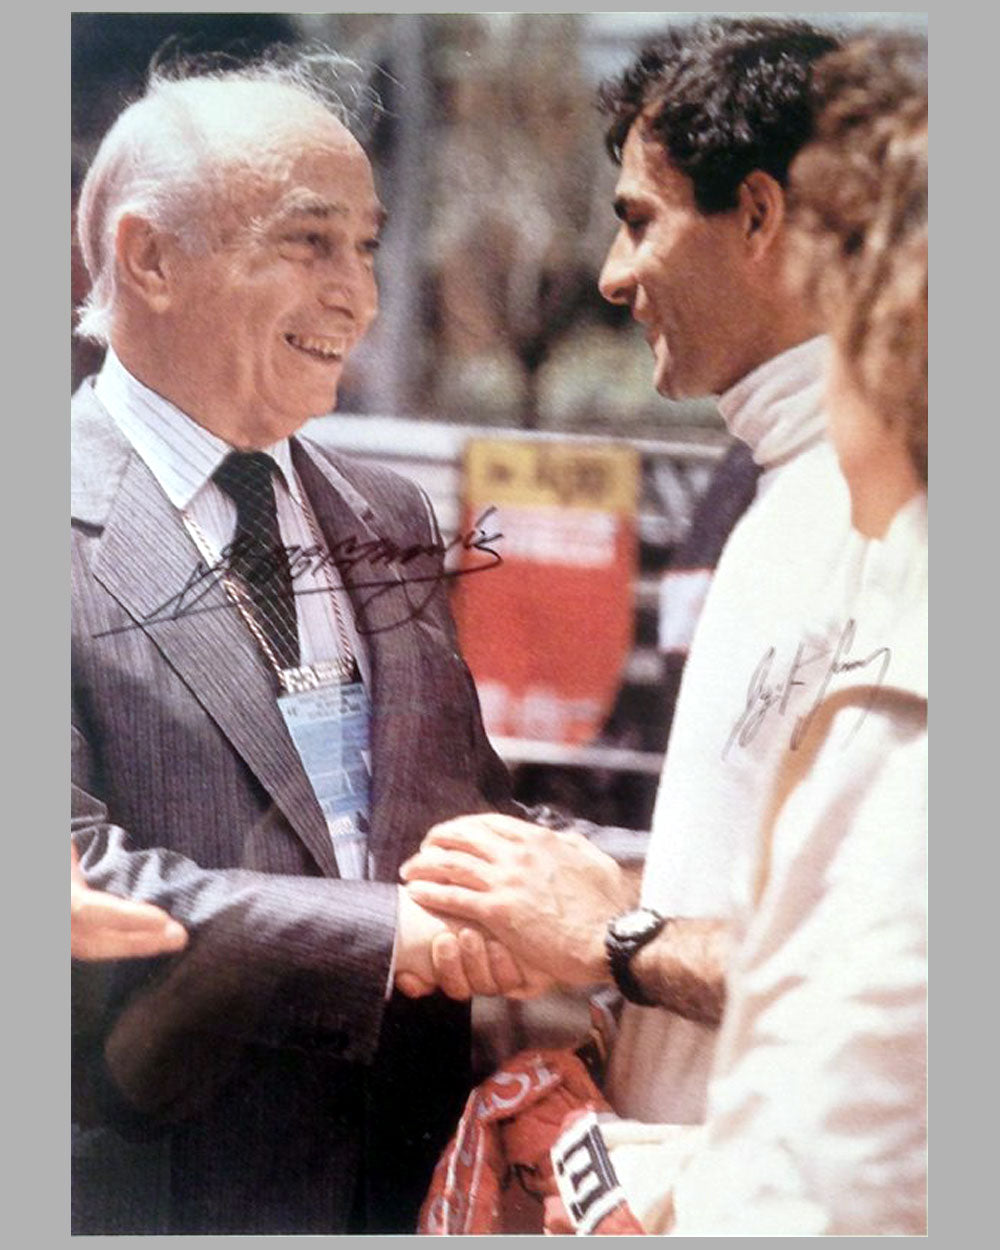 Monaco Grand Prix autographed photo of Fangio and Ayrton Senna, autographed by both drivers